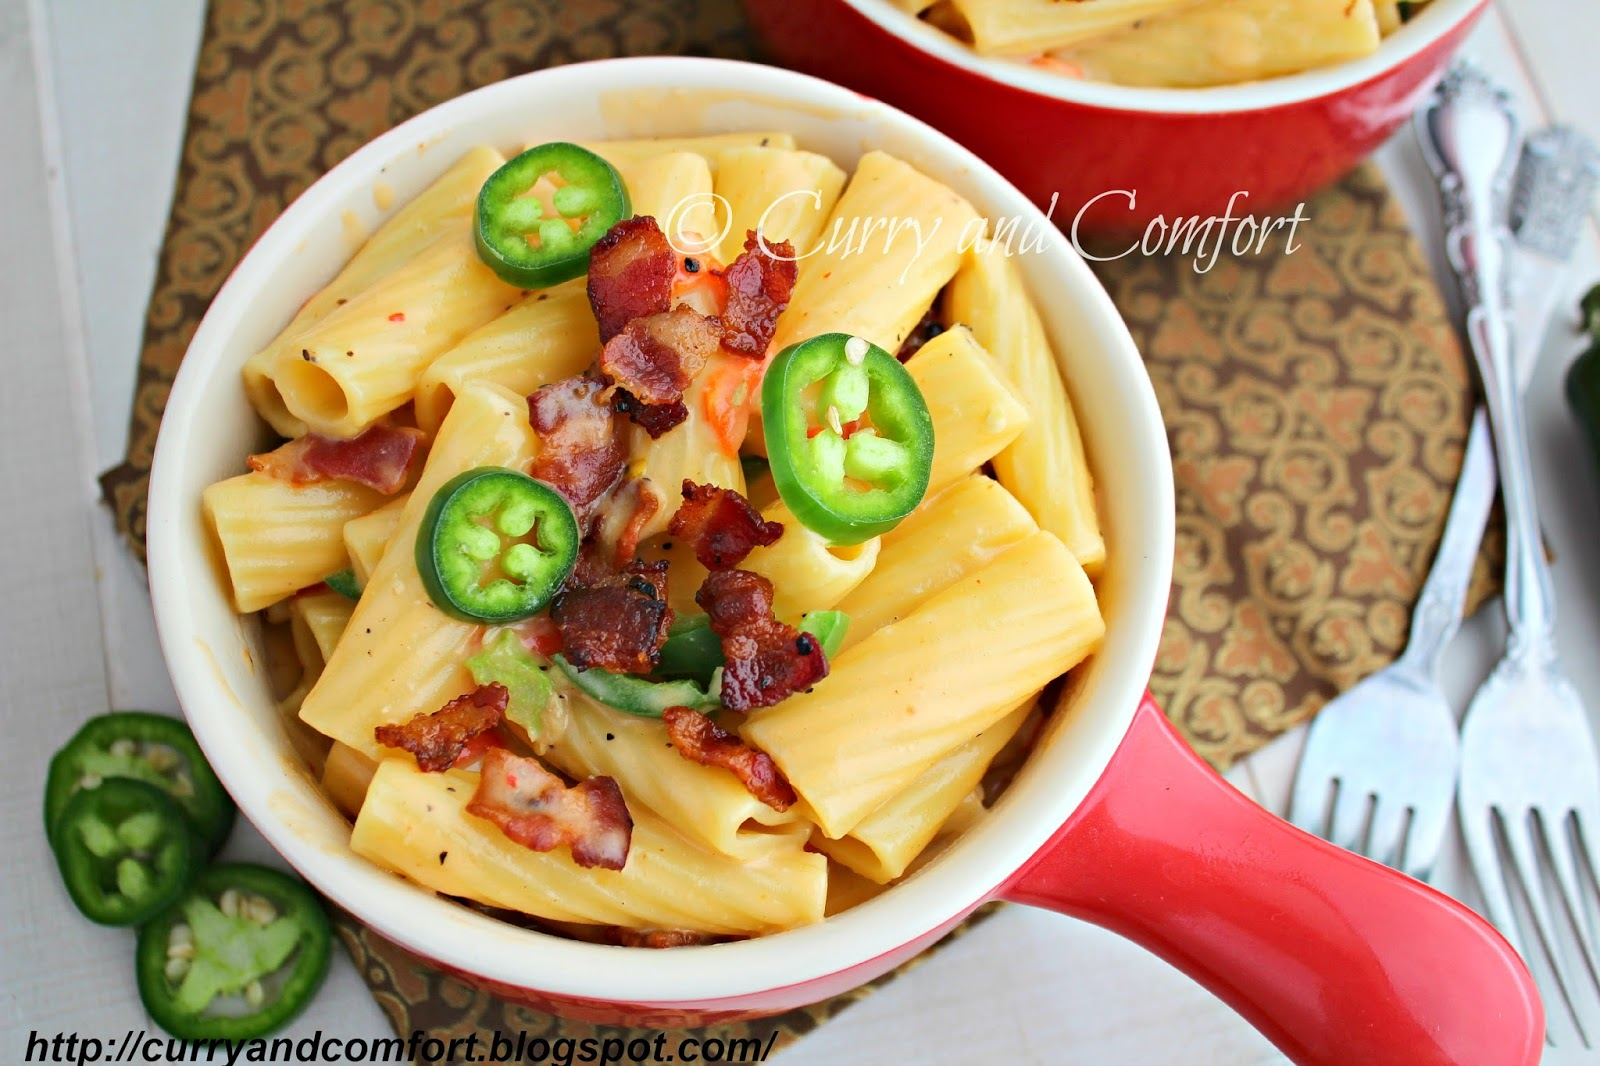 Curry and Comfort: Jalapeno Pimento Mac and Cheese with Bacon